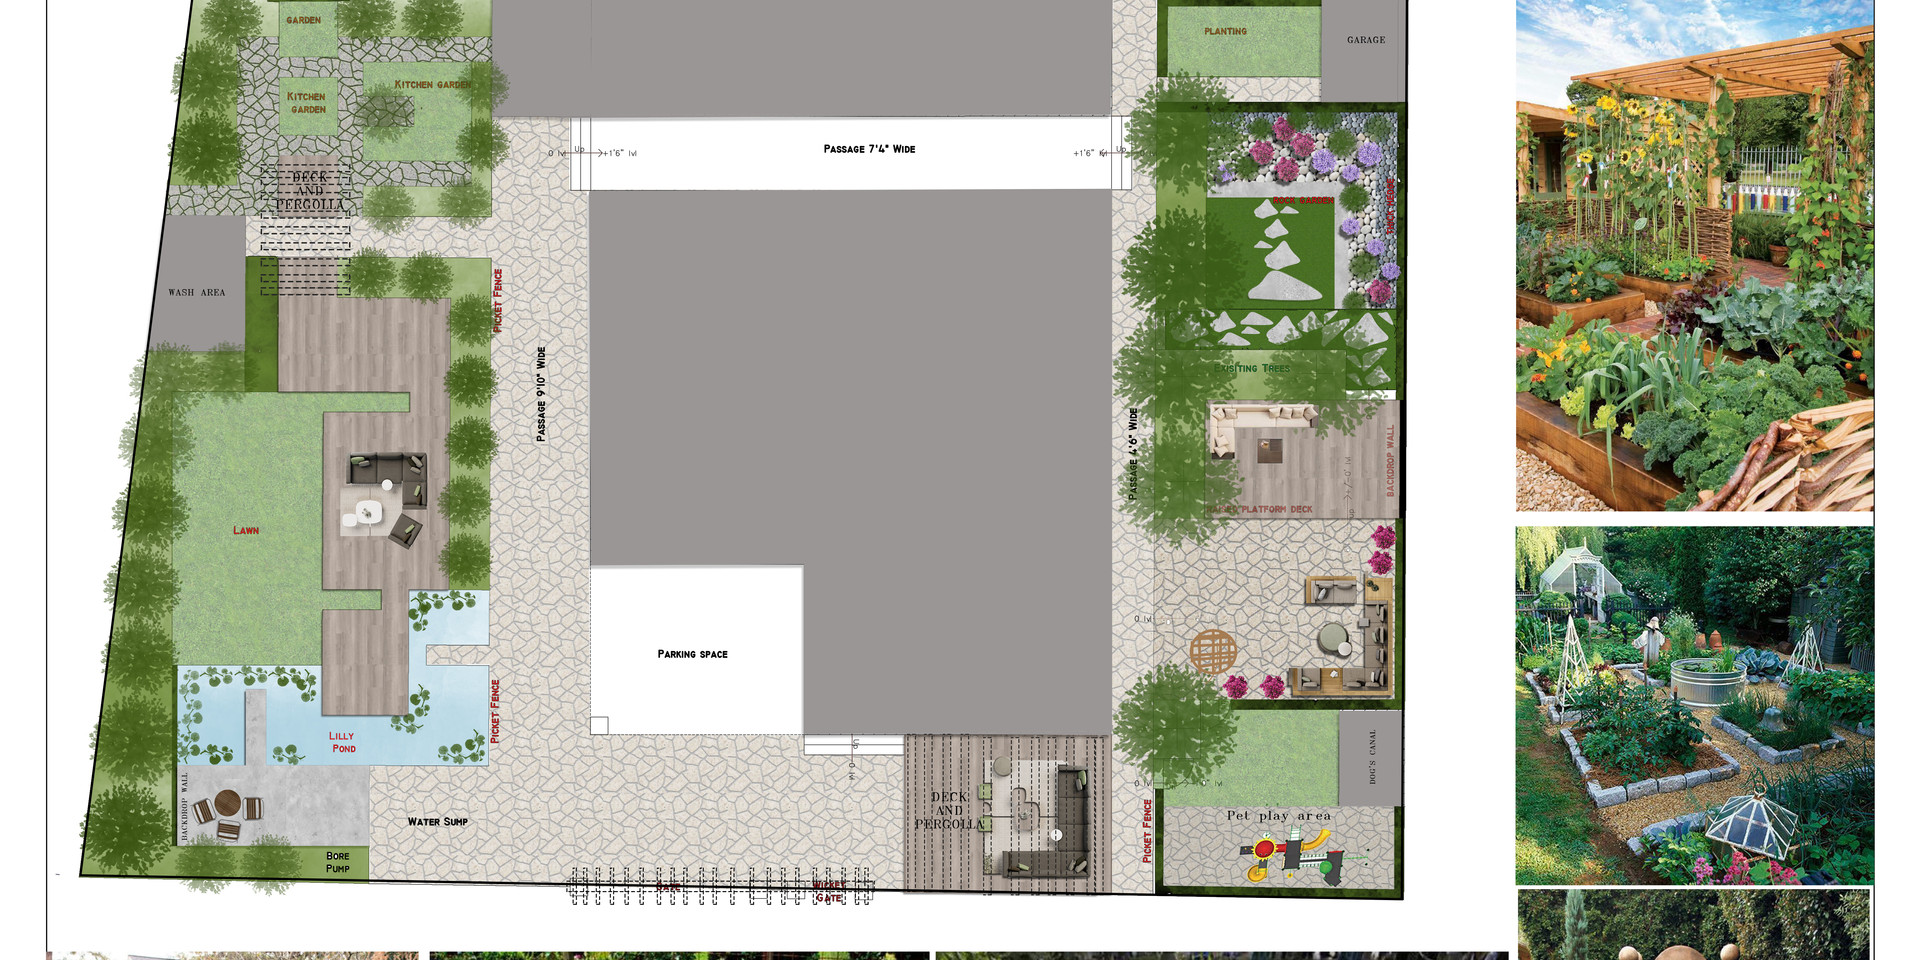 PROPOSED - LANDSCAPING